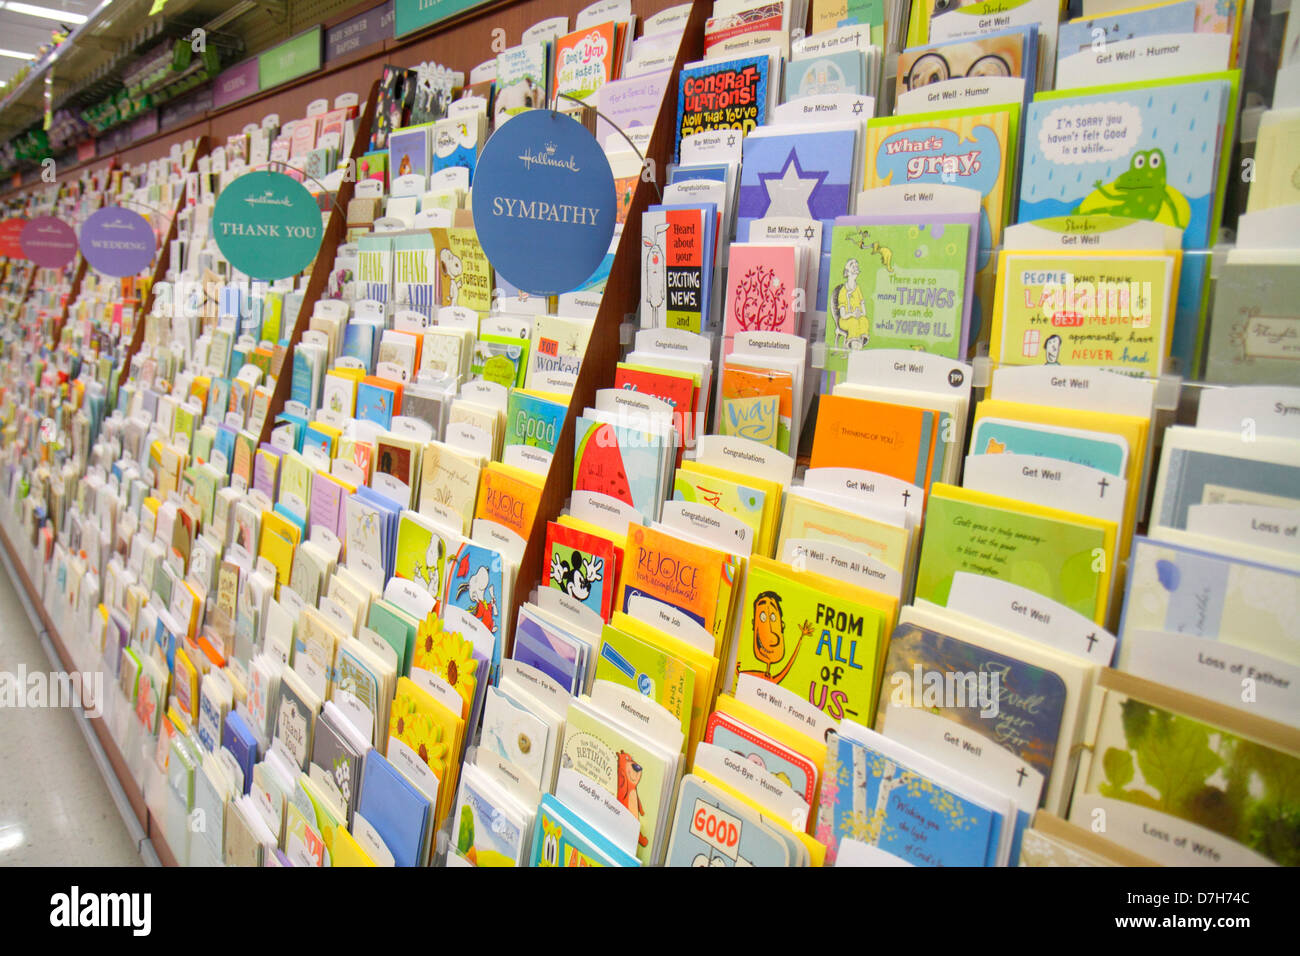 hallmark greeting cards on display at a walgreens flagship store, Birthday card